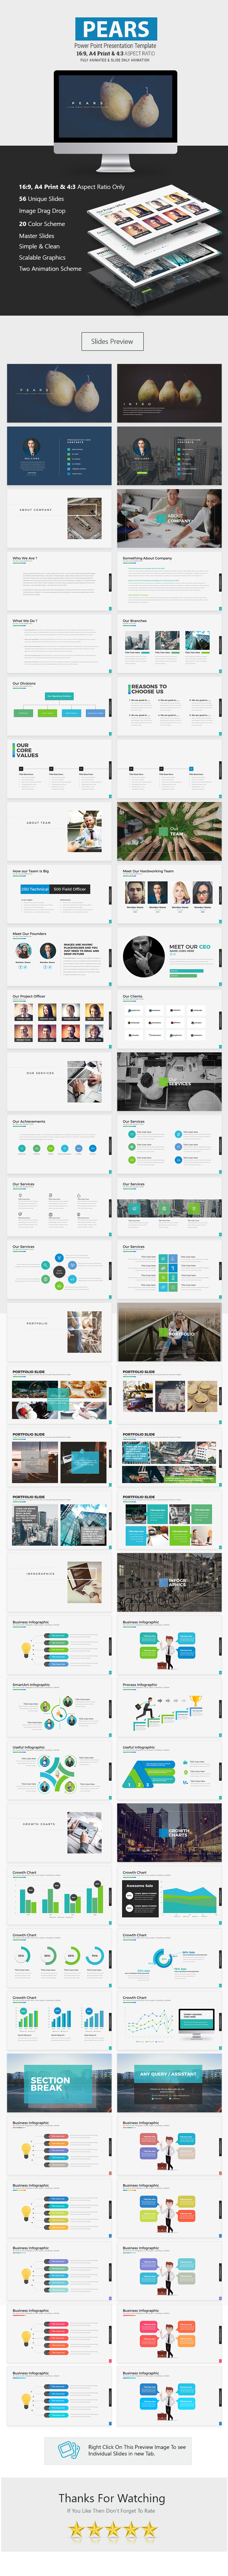 Pears Power Point Presentation - Business PowerPoint Templates